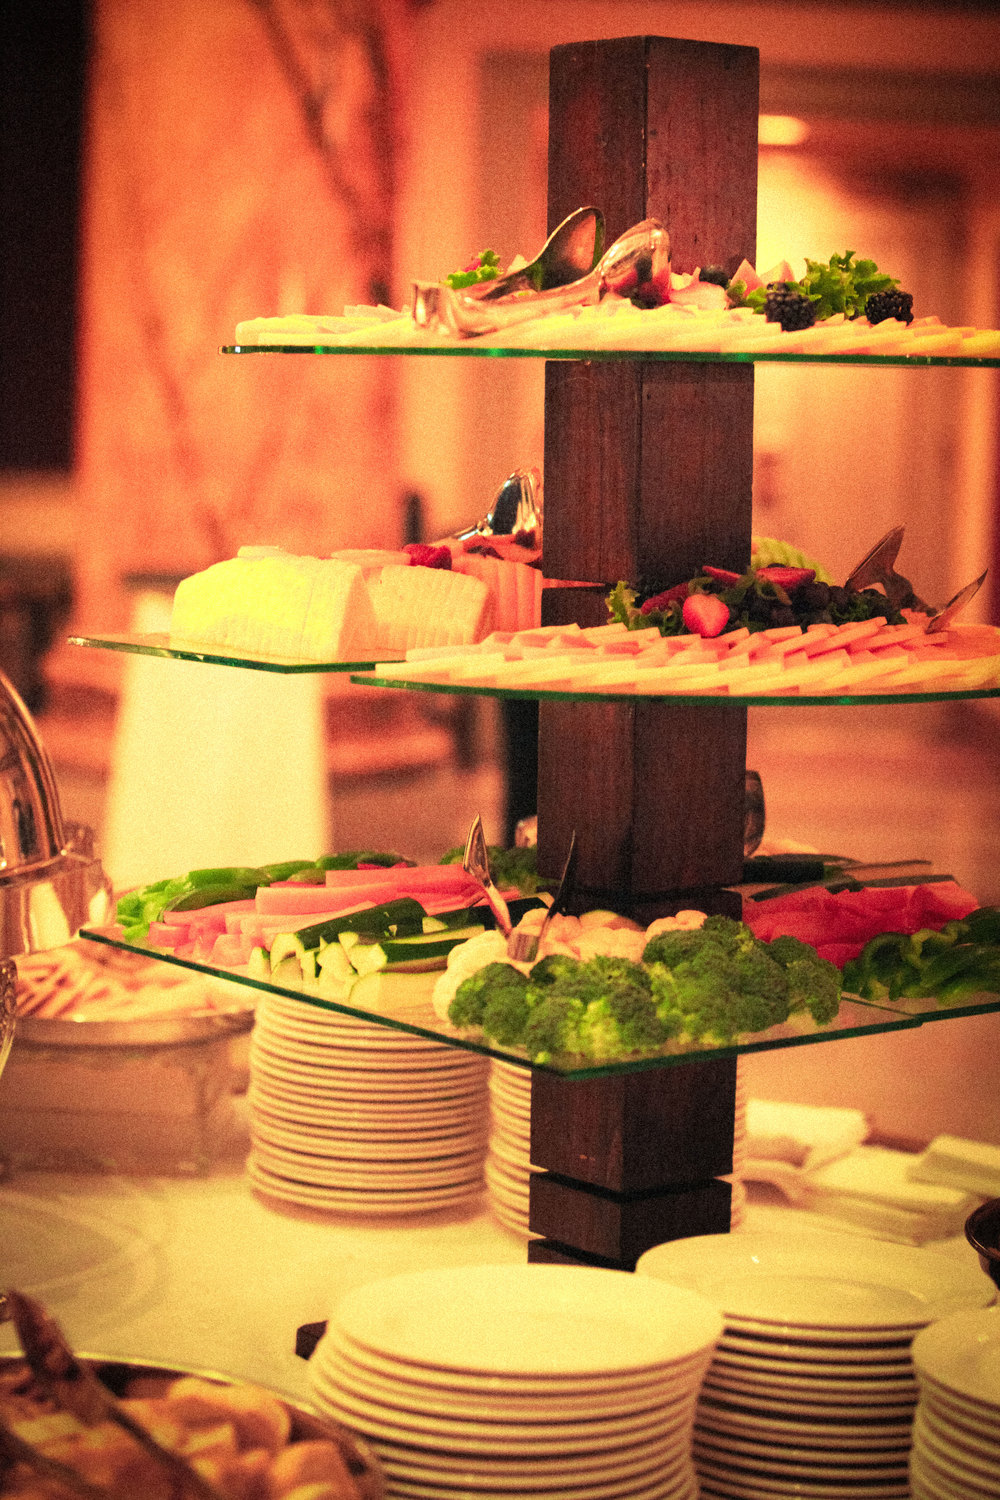 Gala,-food-display.jpg